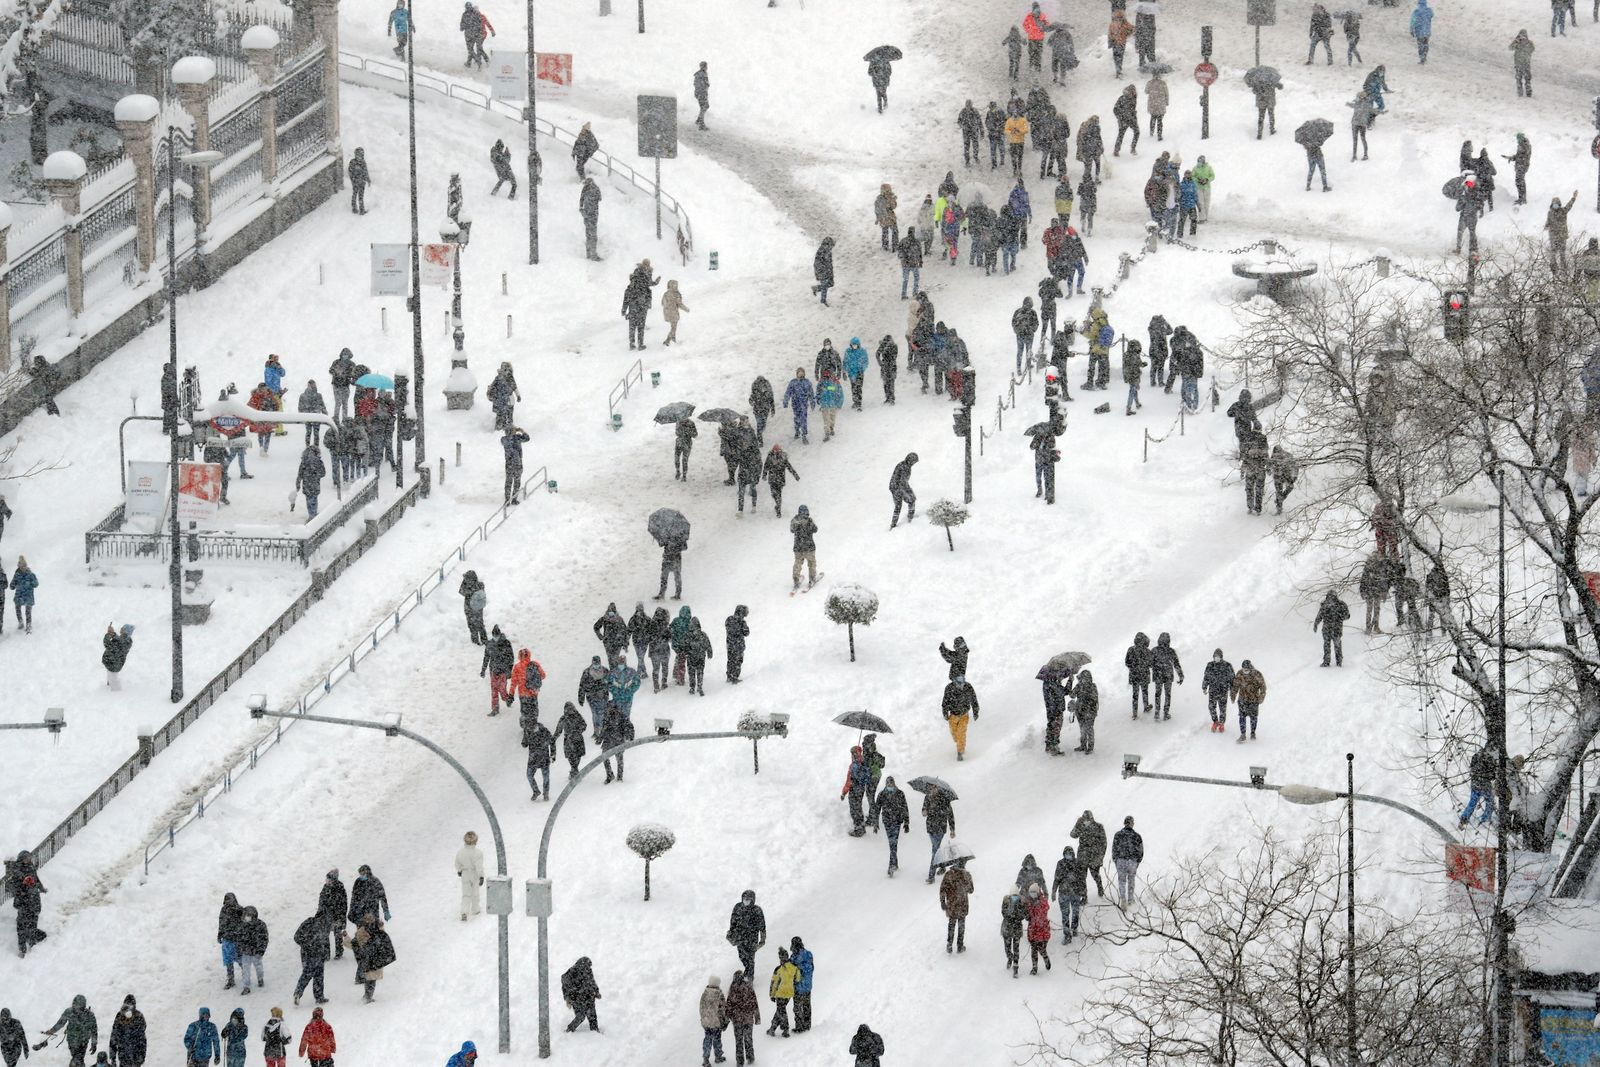 People are seen from the rooftop of the Circulo de Bellas Artes cultural center during a heavy snowfall in Madrid